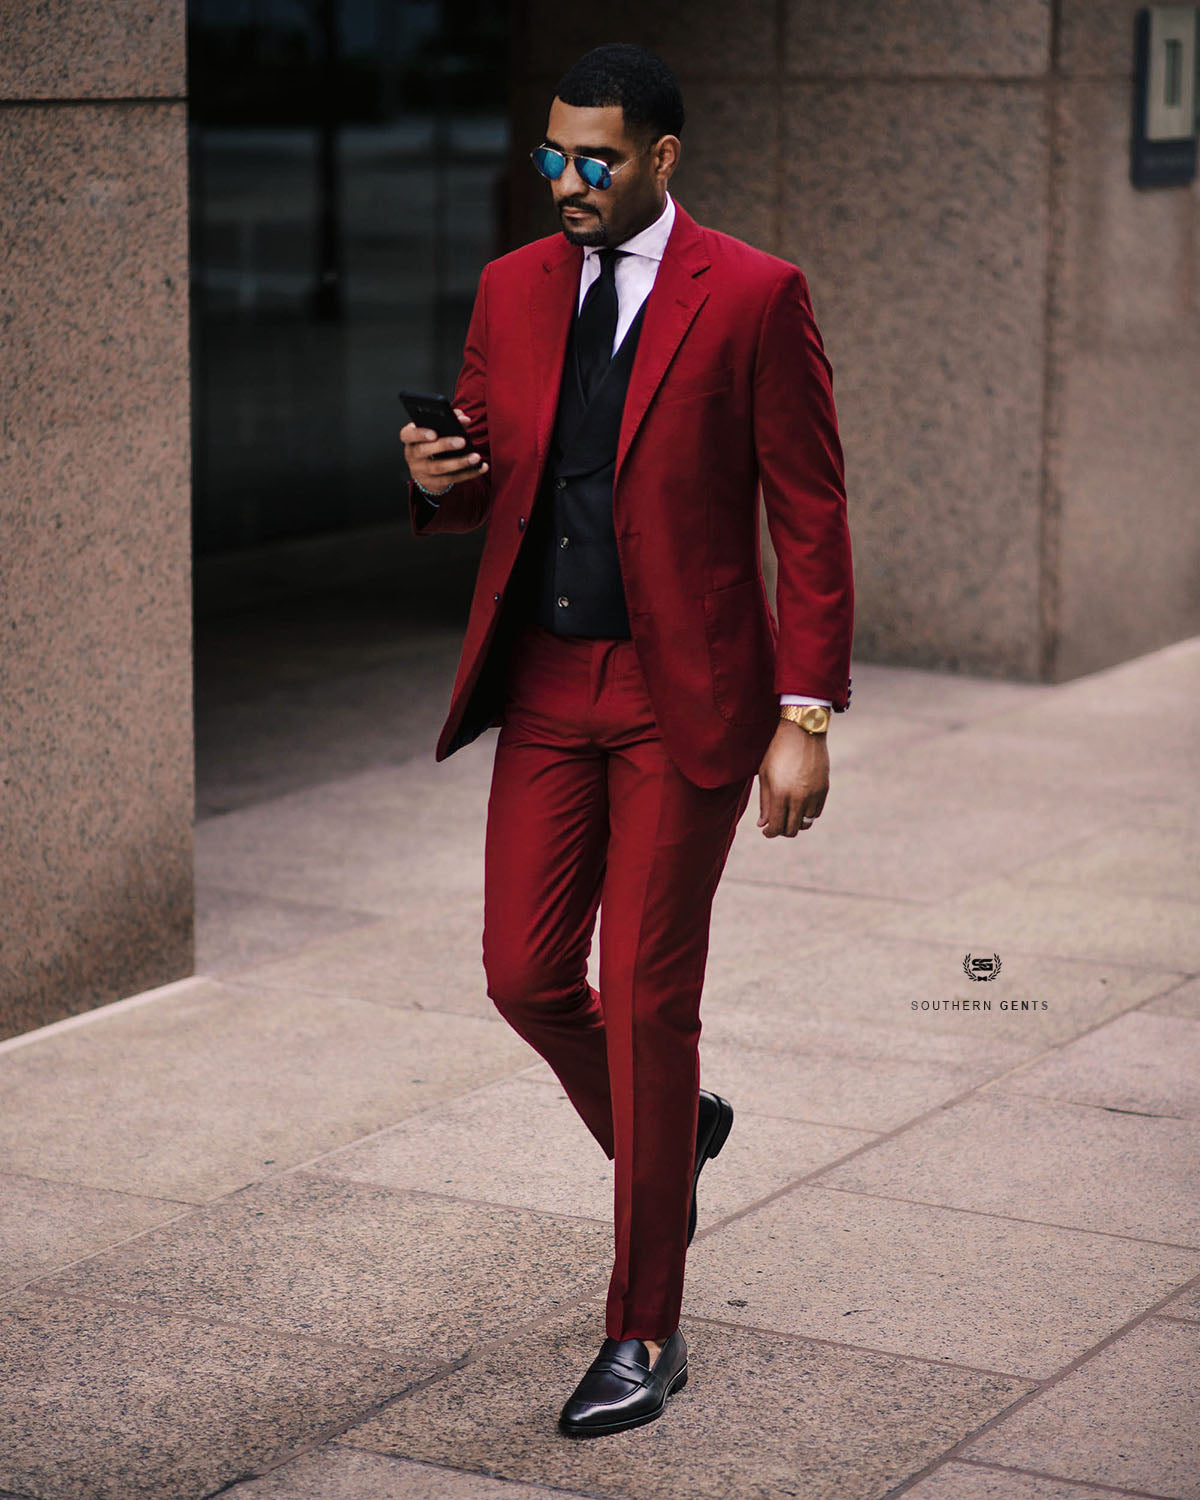 Southern Gents Red Blazer Red Suit Crimson Suit